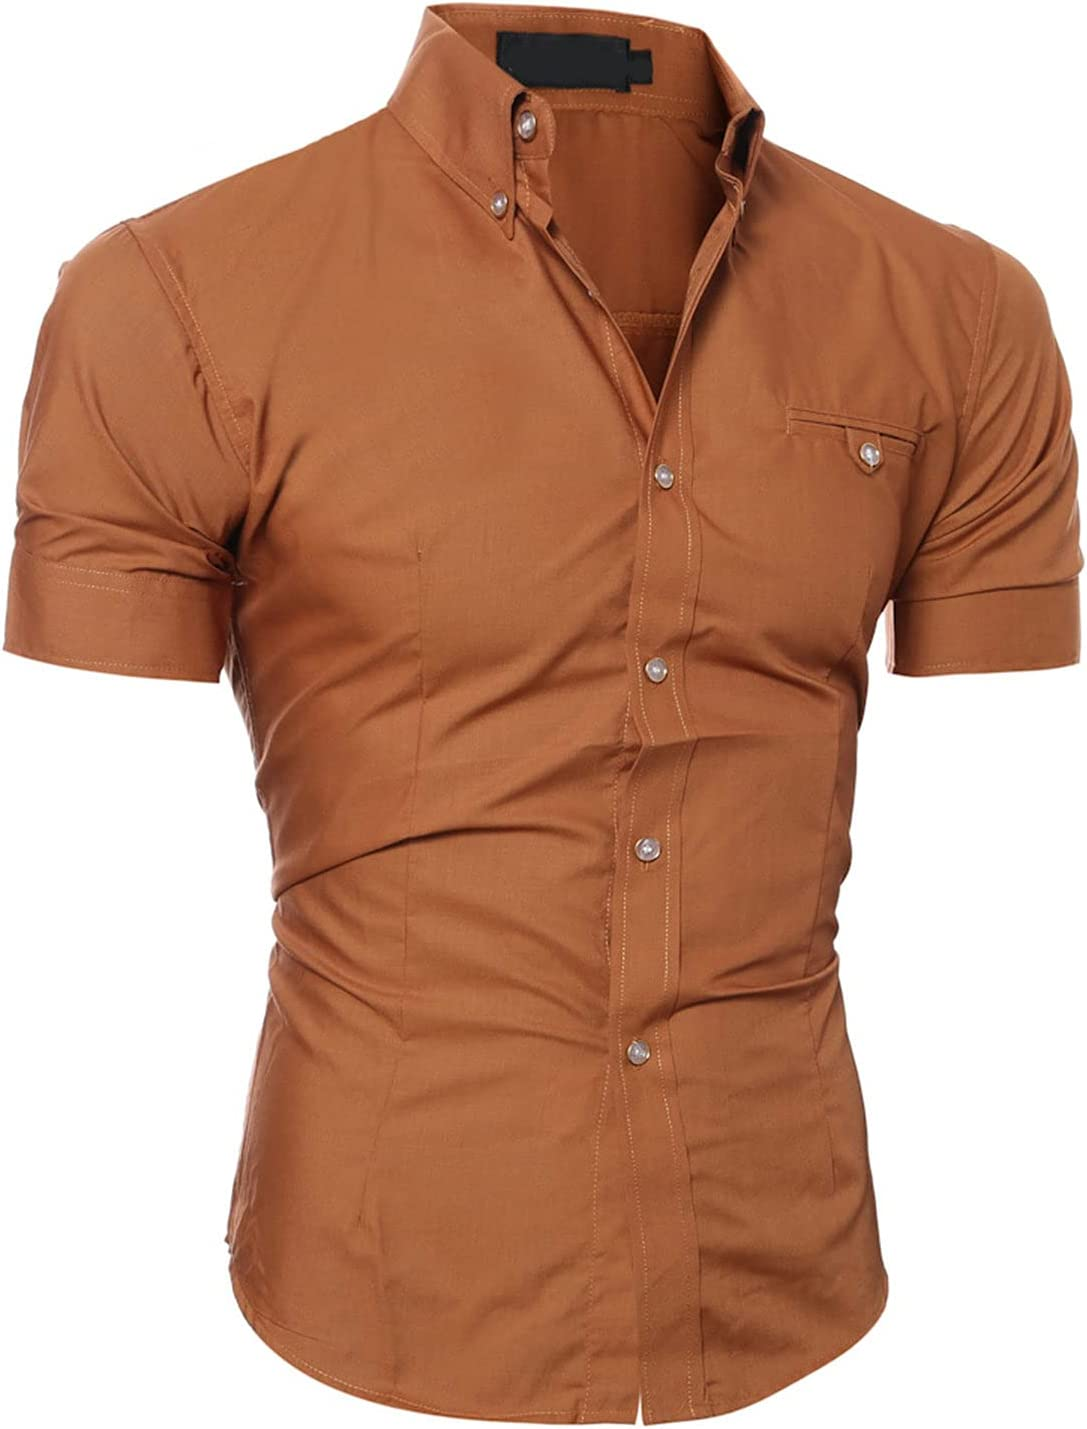 Men's Slim Short Sleeve Dress Shirts Casual Business Cotton Button Down Shirt Regular Fit Solid Color Shirt with Pocket (Brown,XX-Large)